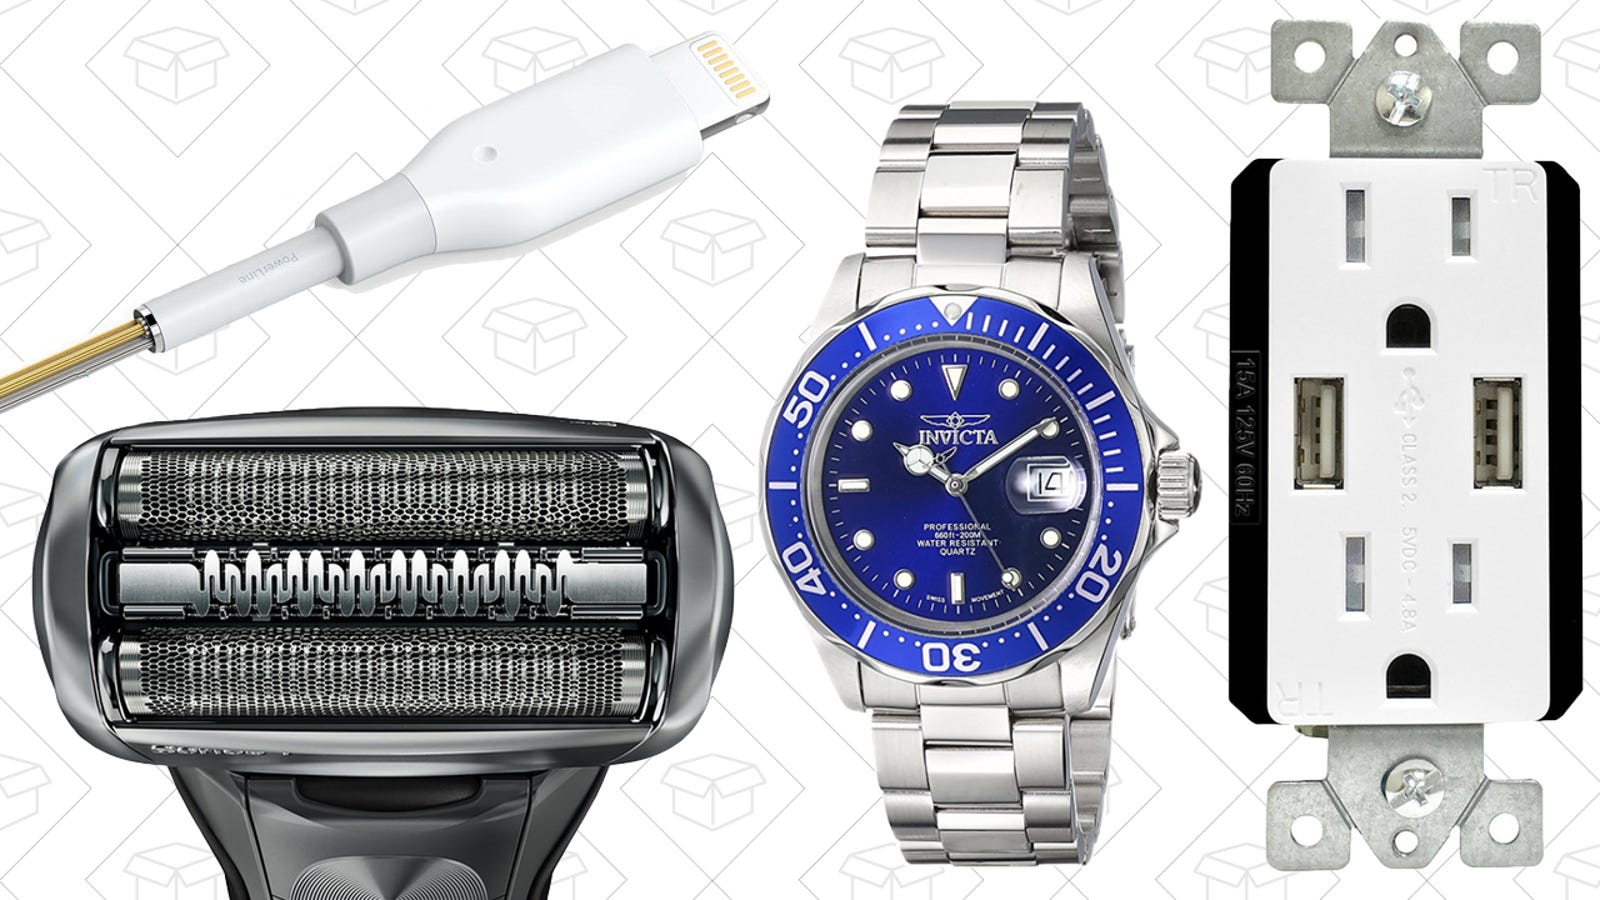 Today's Best Deals: Father's Day Gifts, Anker PowerLine